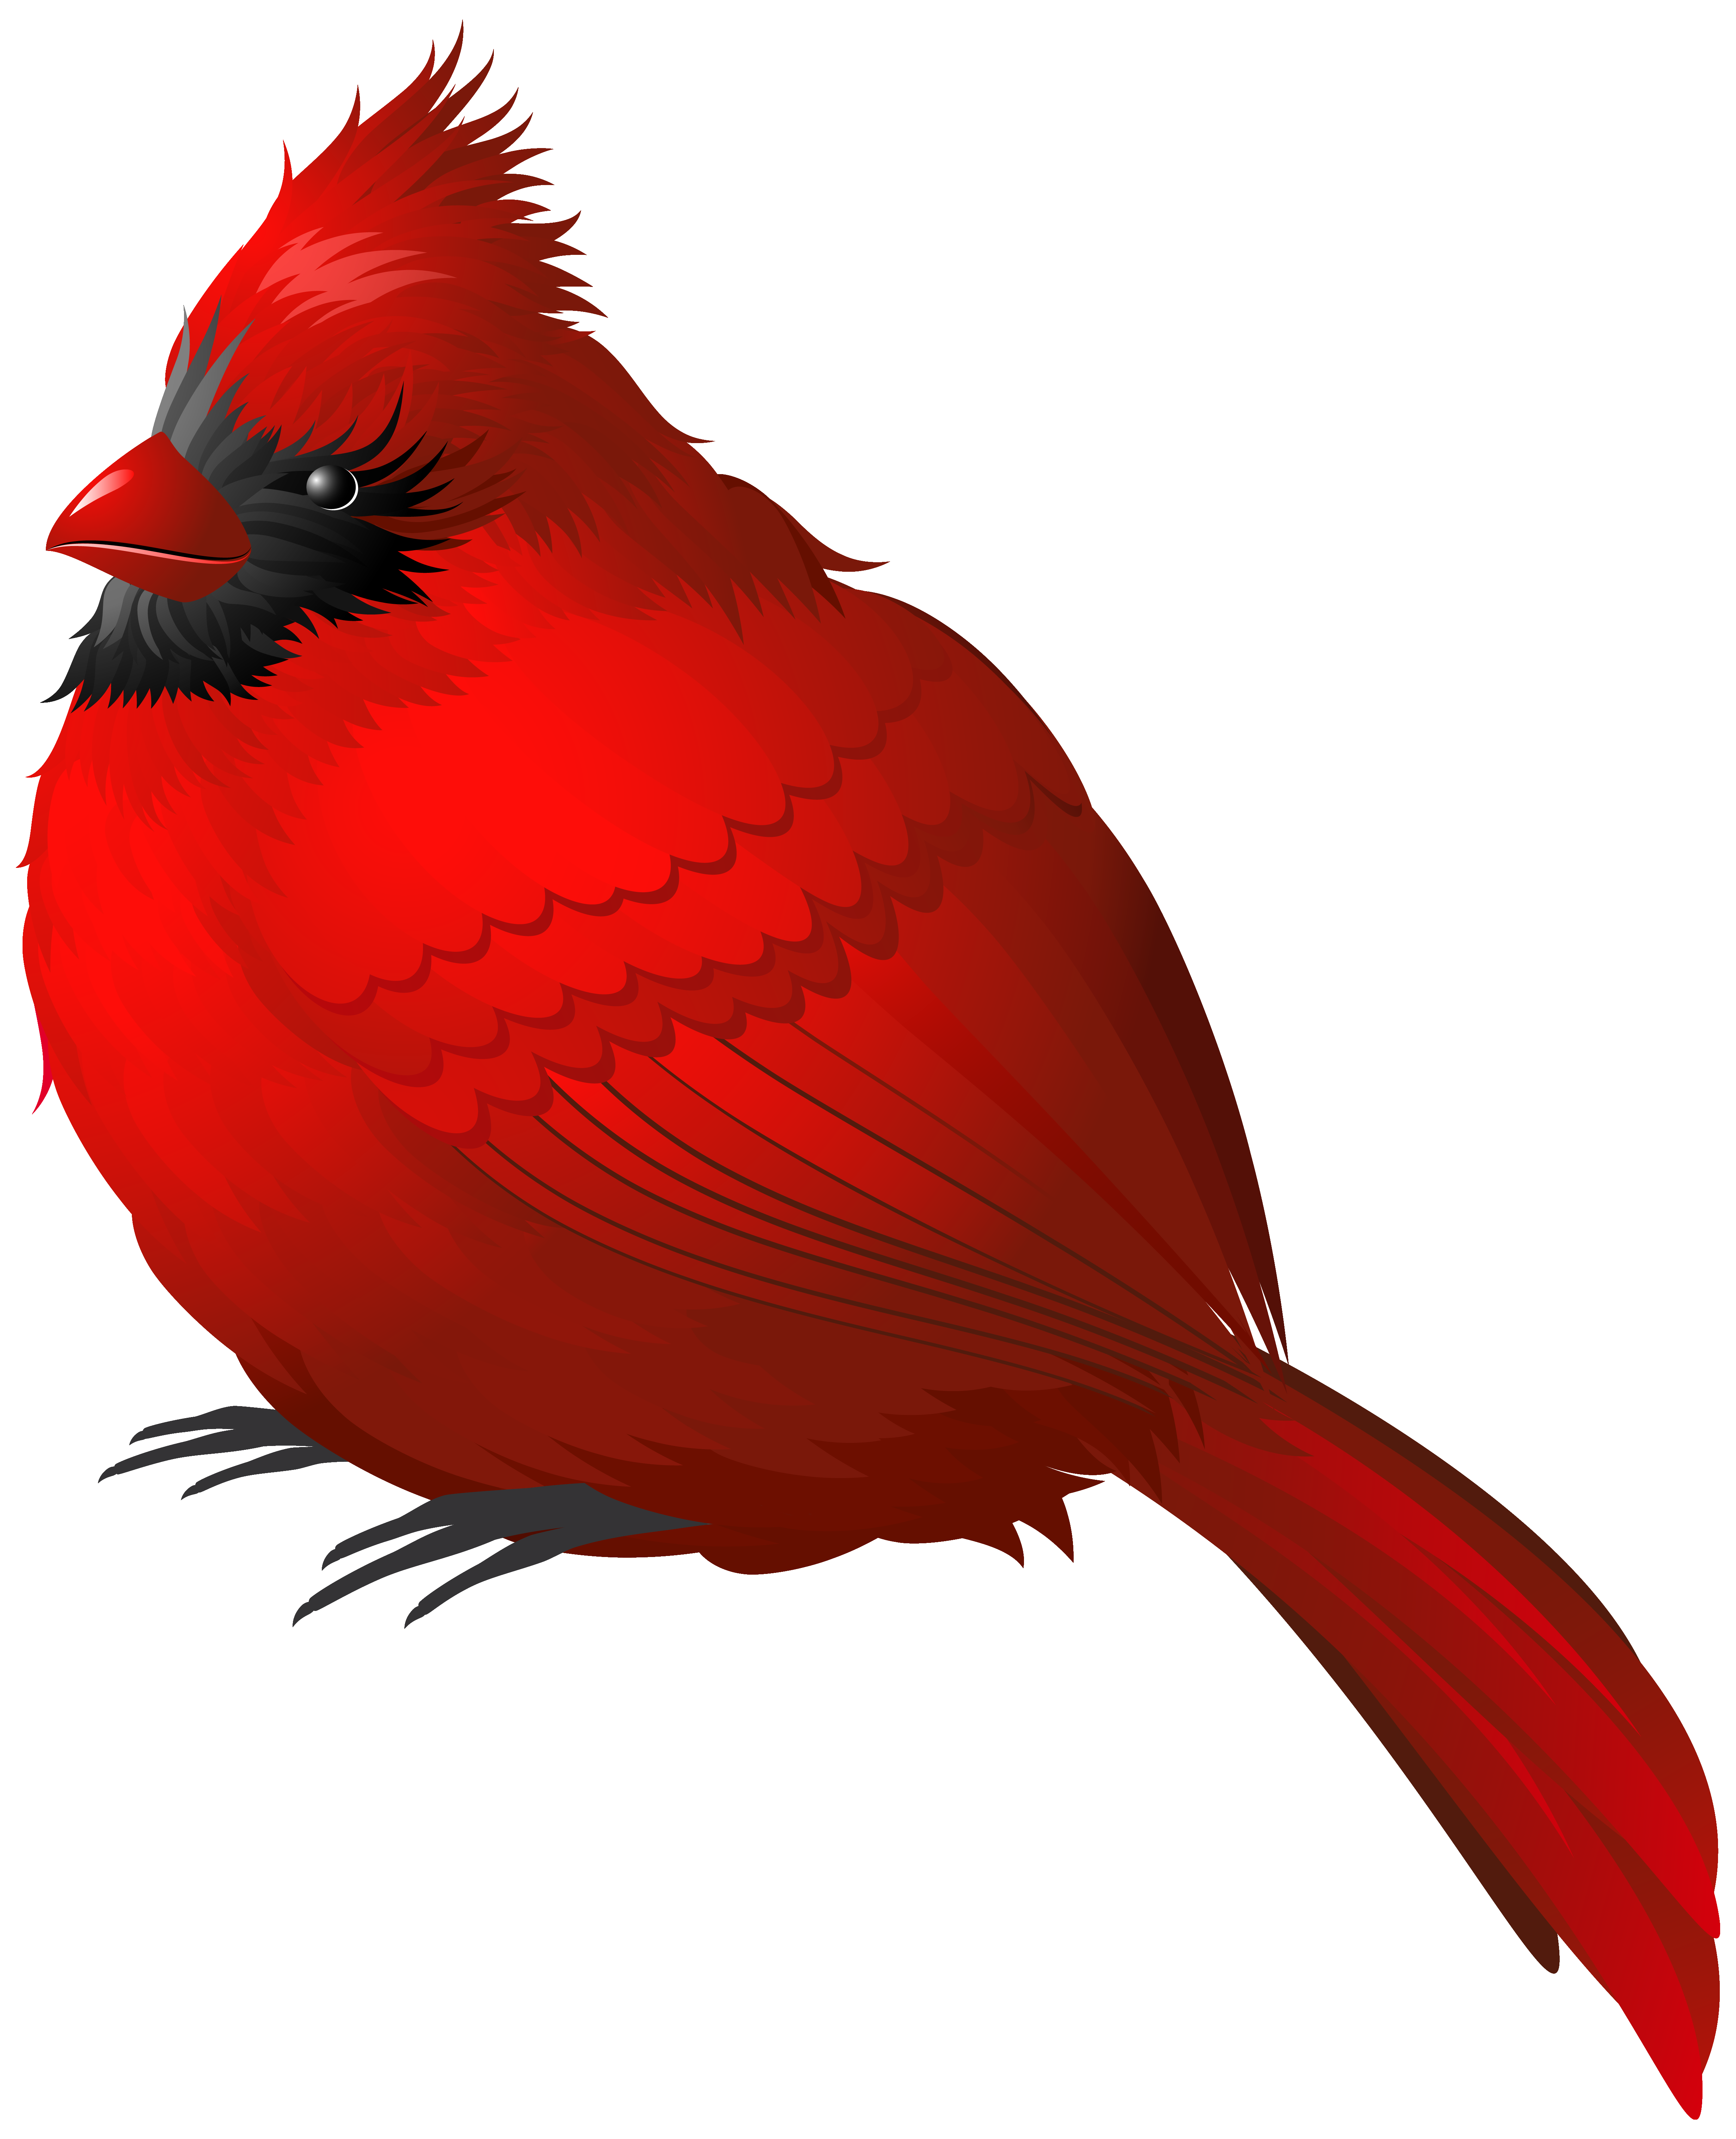 Cardinal clipart borders. Red winter bird png